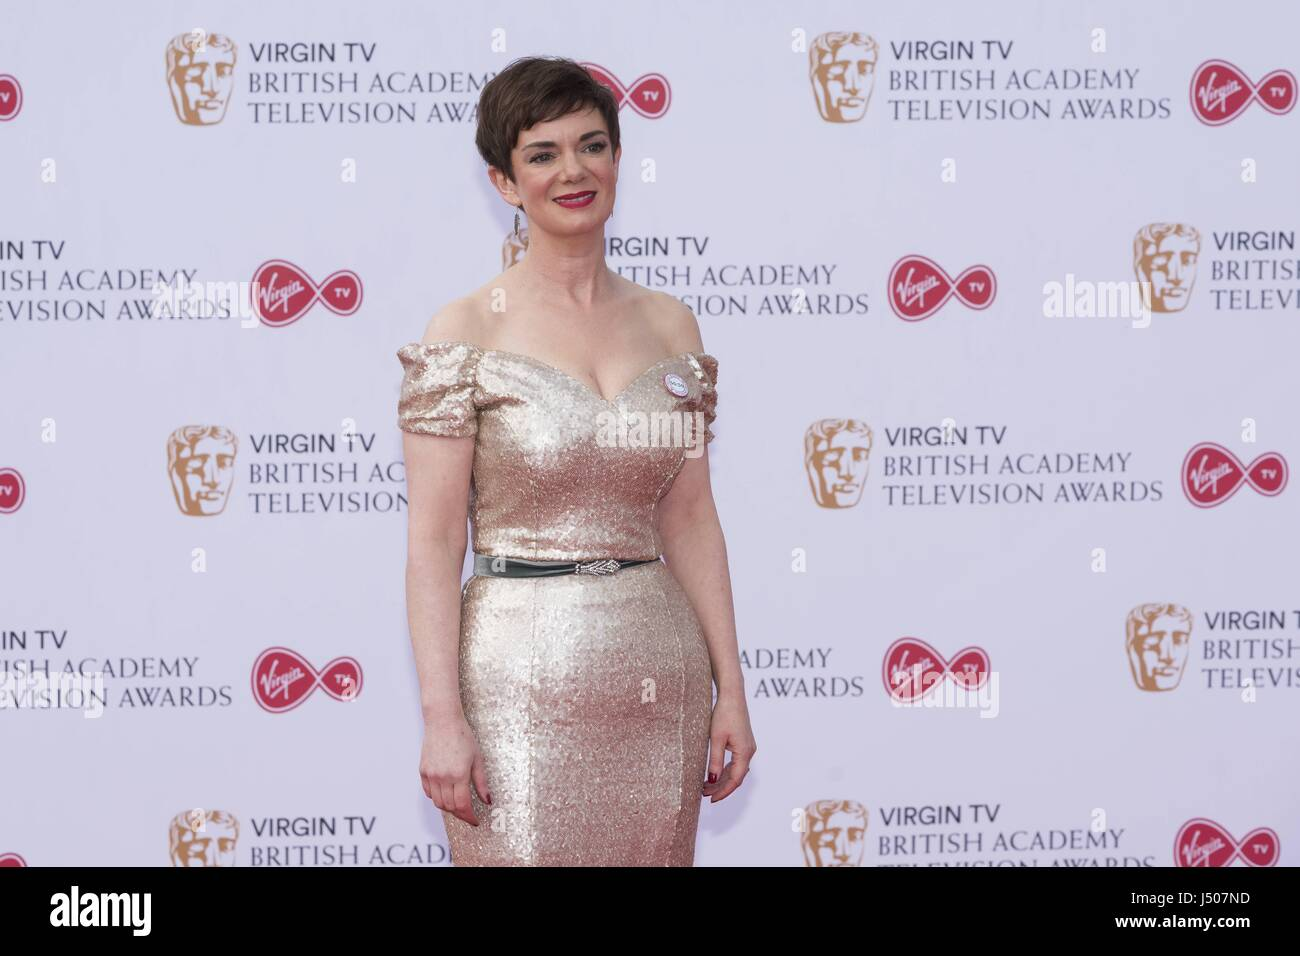 Actress Victoria Hamilton High Resolution Stock Photography And Images Alamy